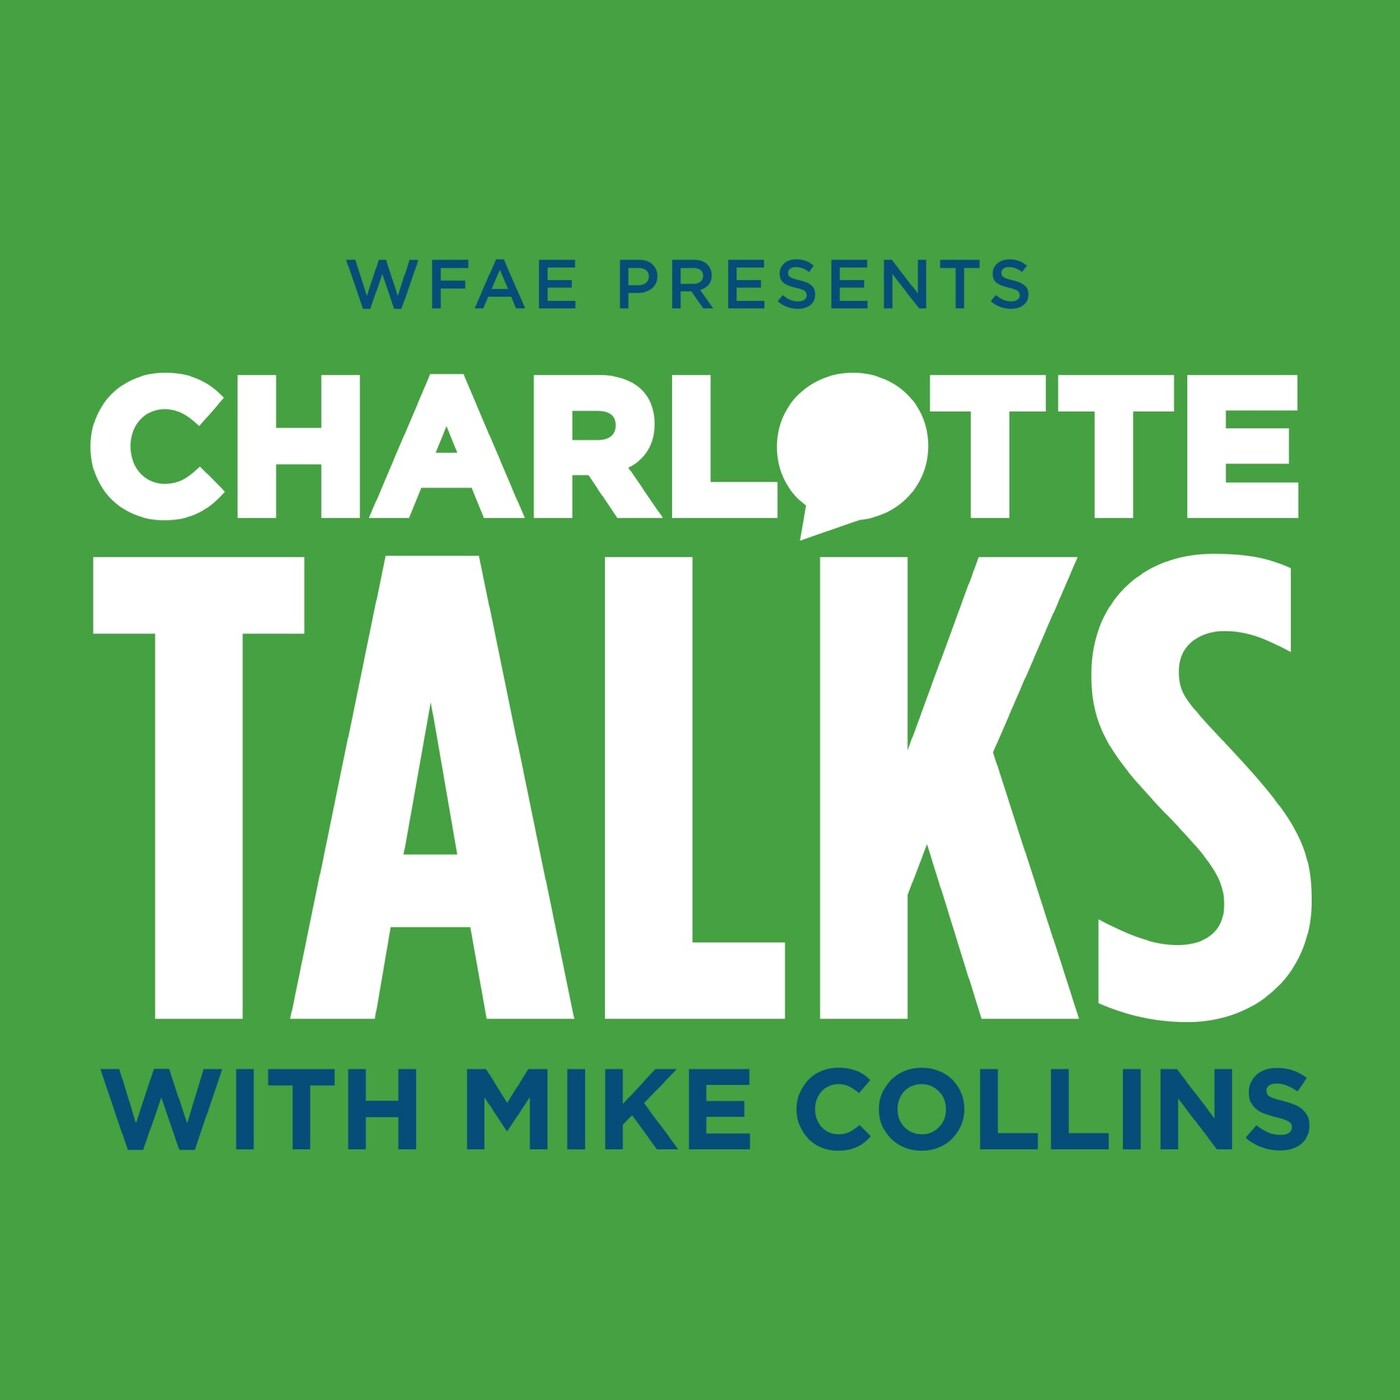 Charlotte Nc Sales Tax >> Wfae Charlotte Talks Npr